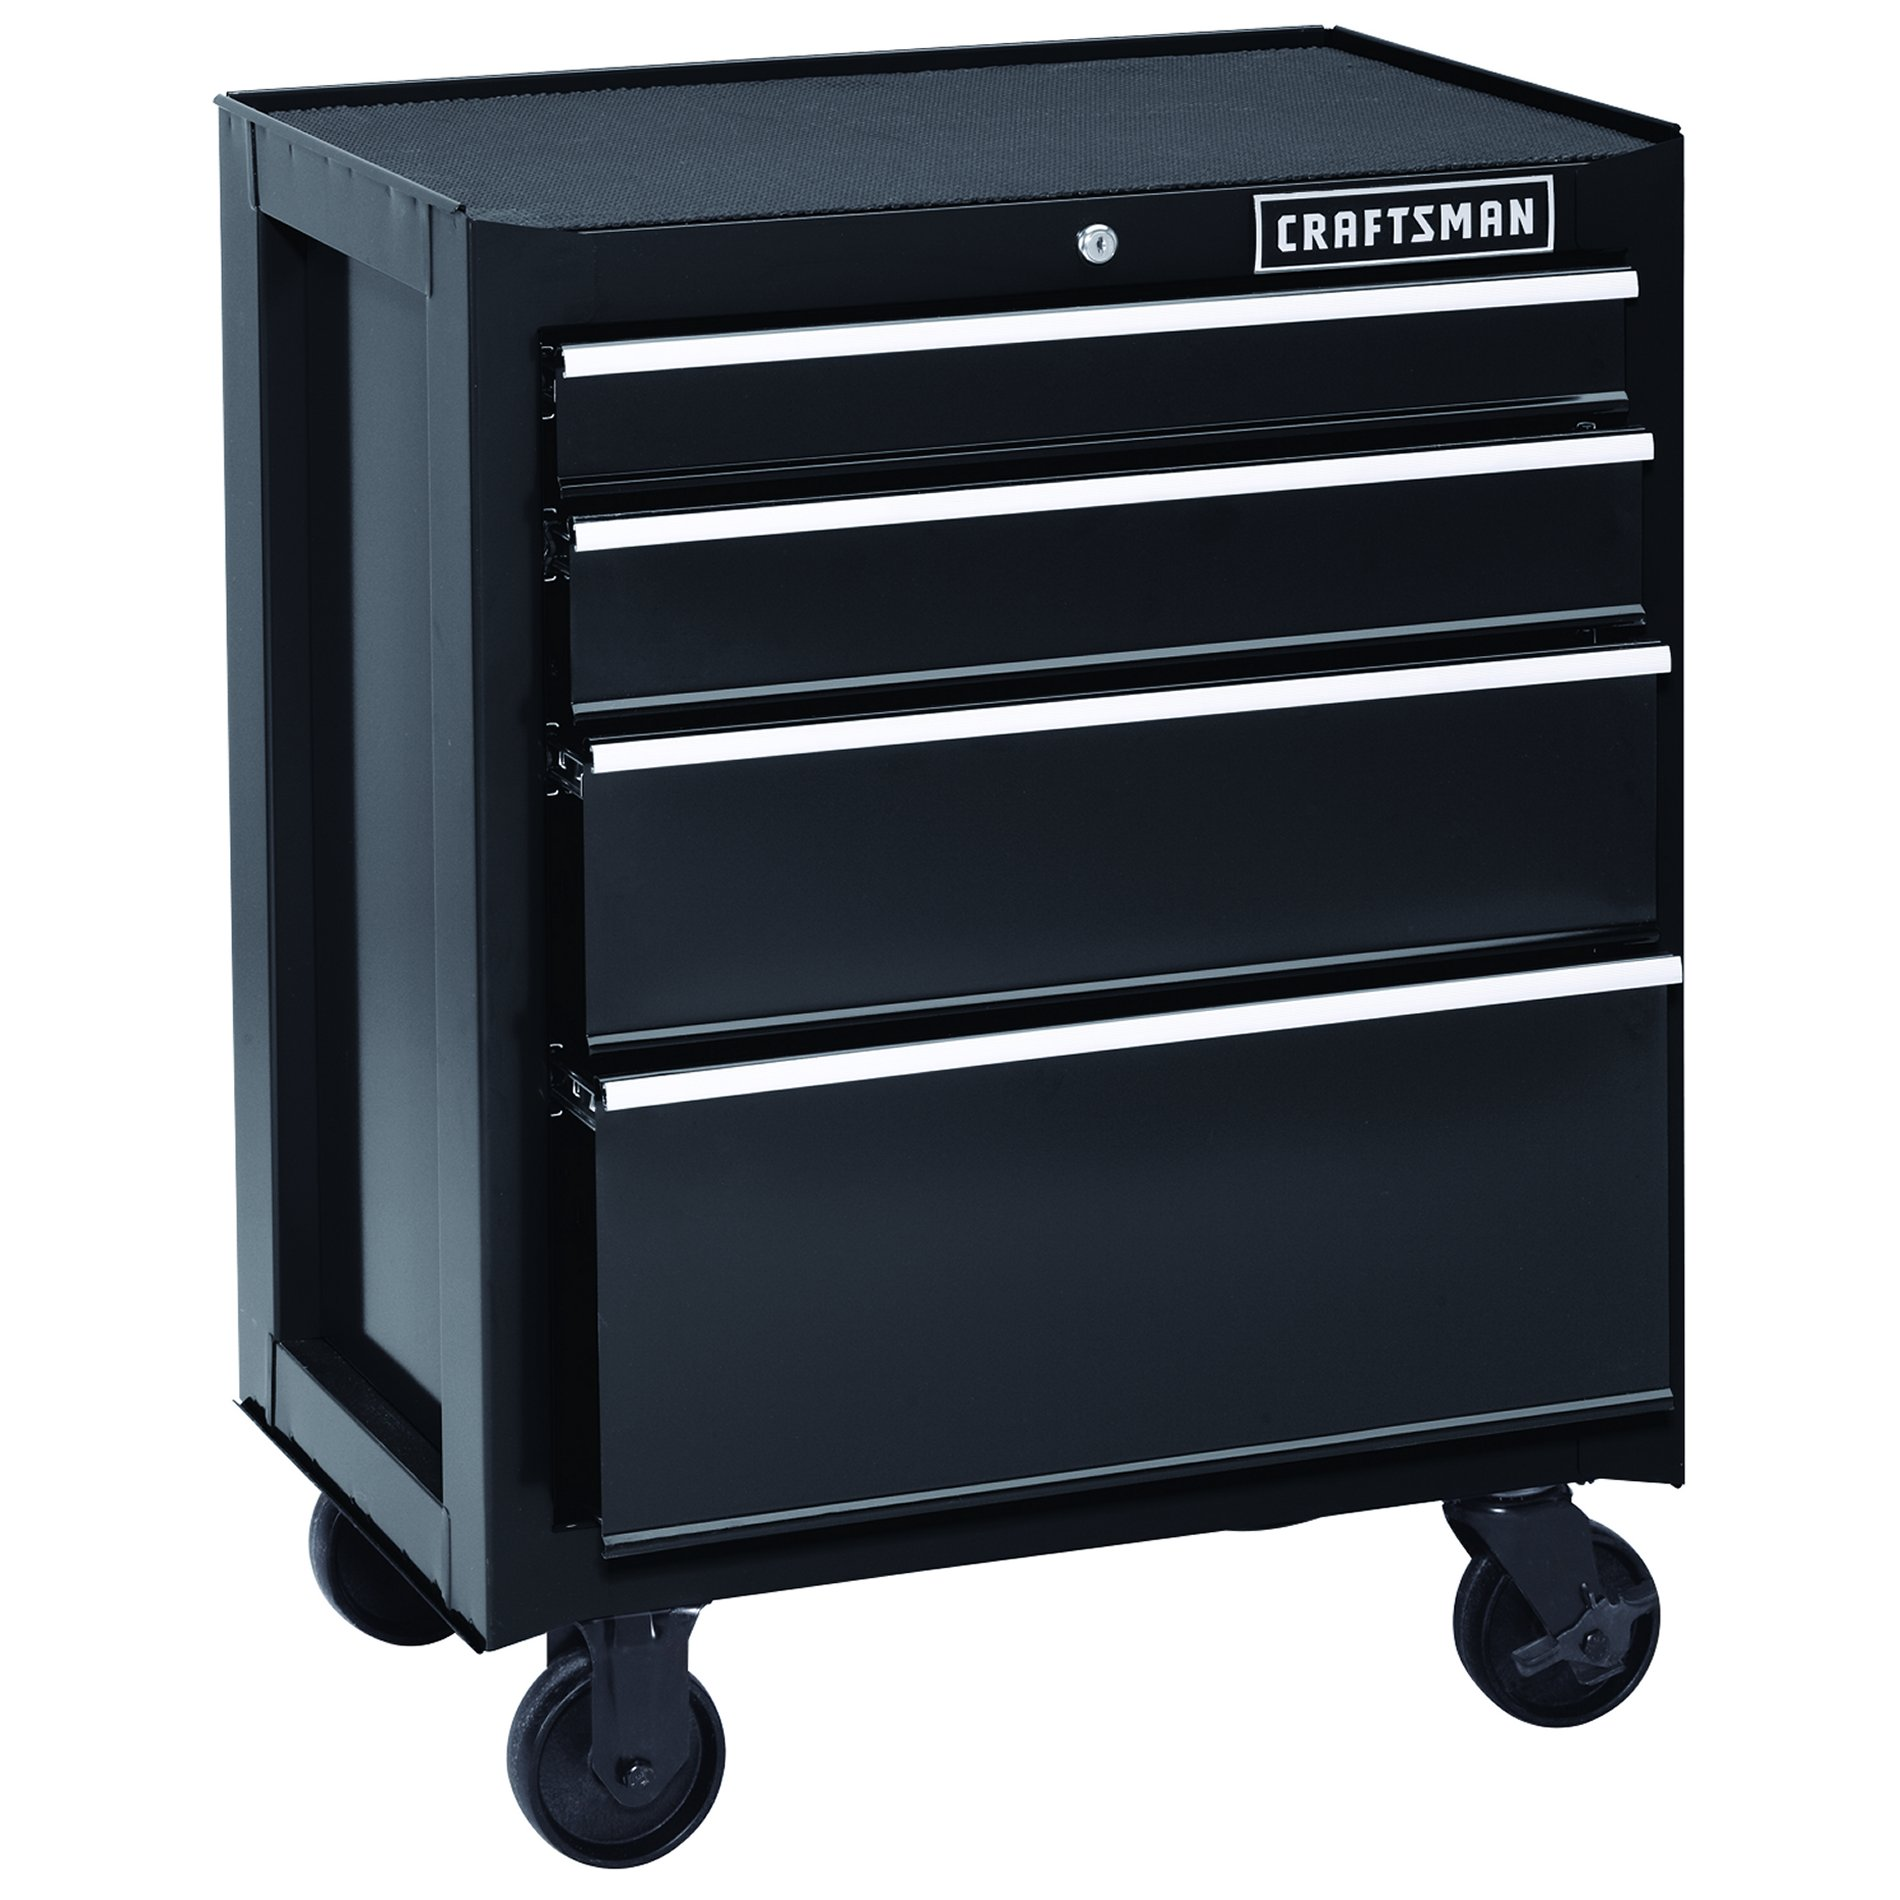 "Craftsman 26"""" 4-Drawer Heavy-Duty Rolling Cabinet - Black"